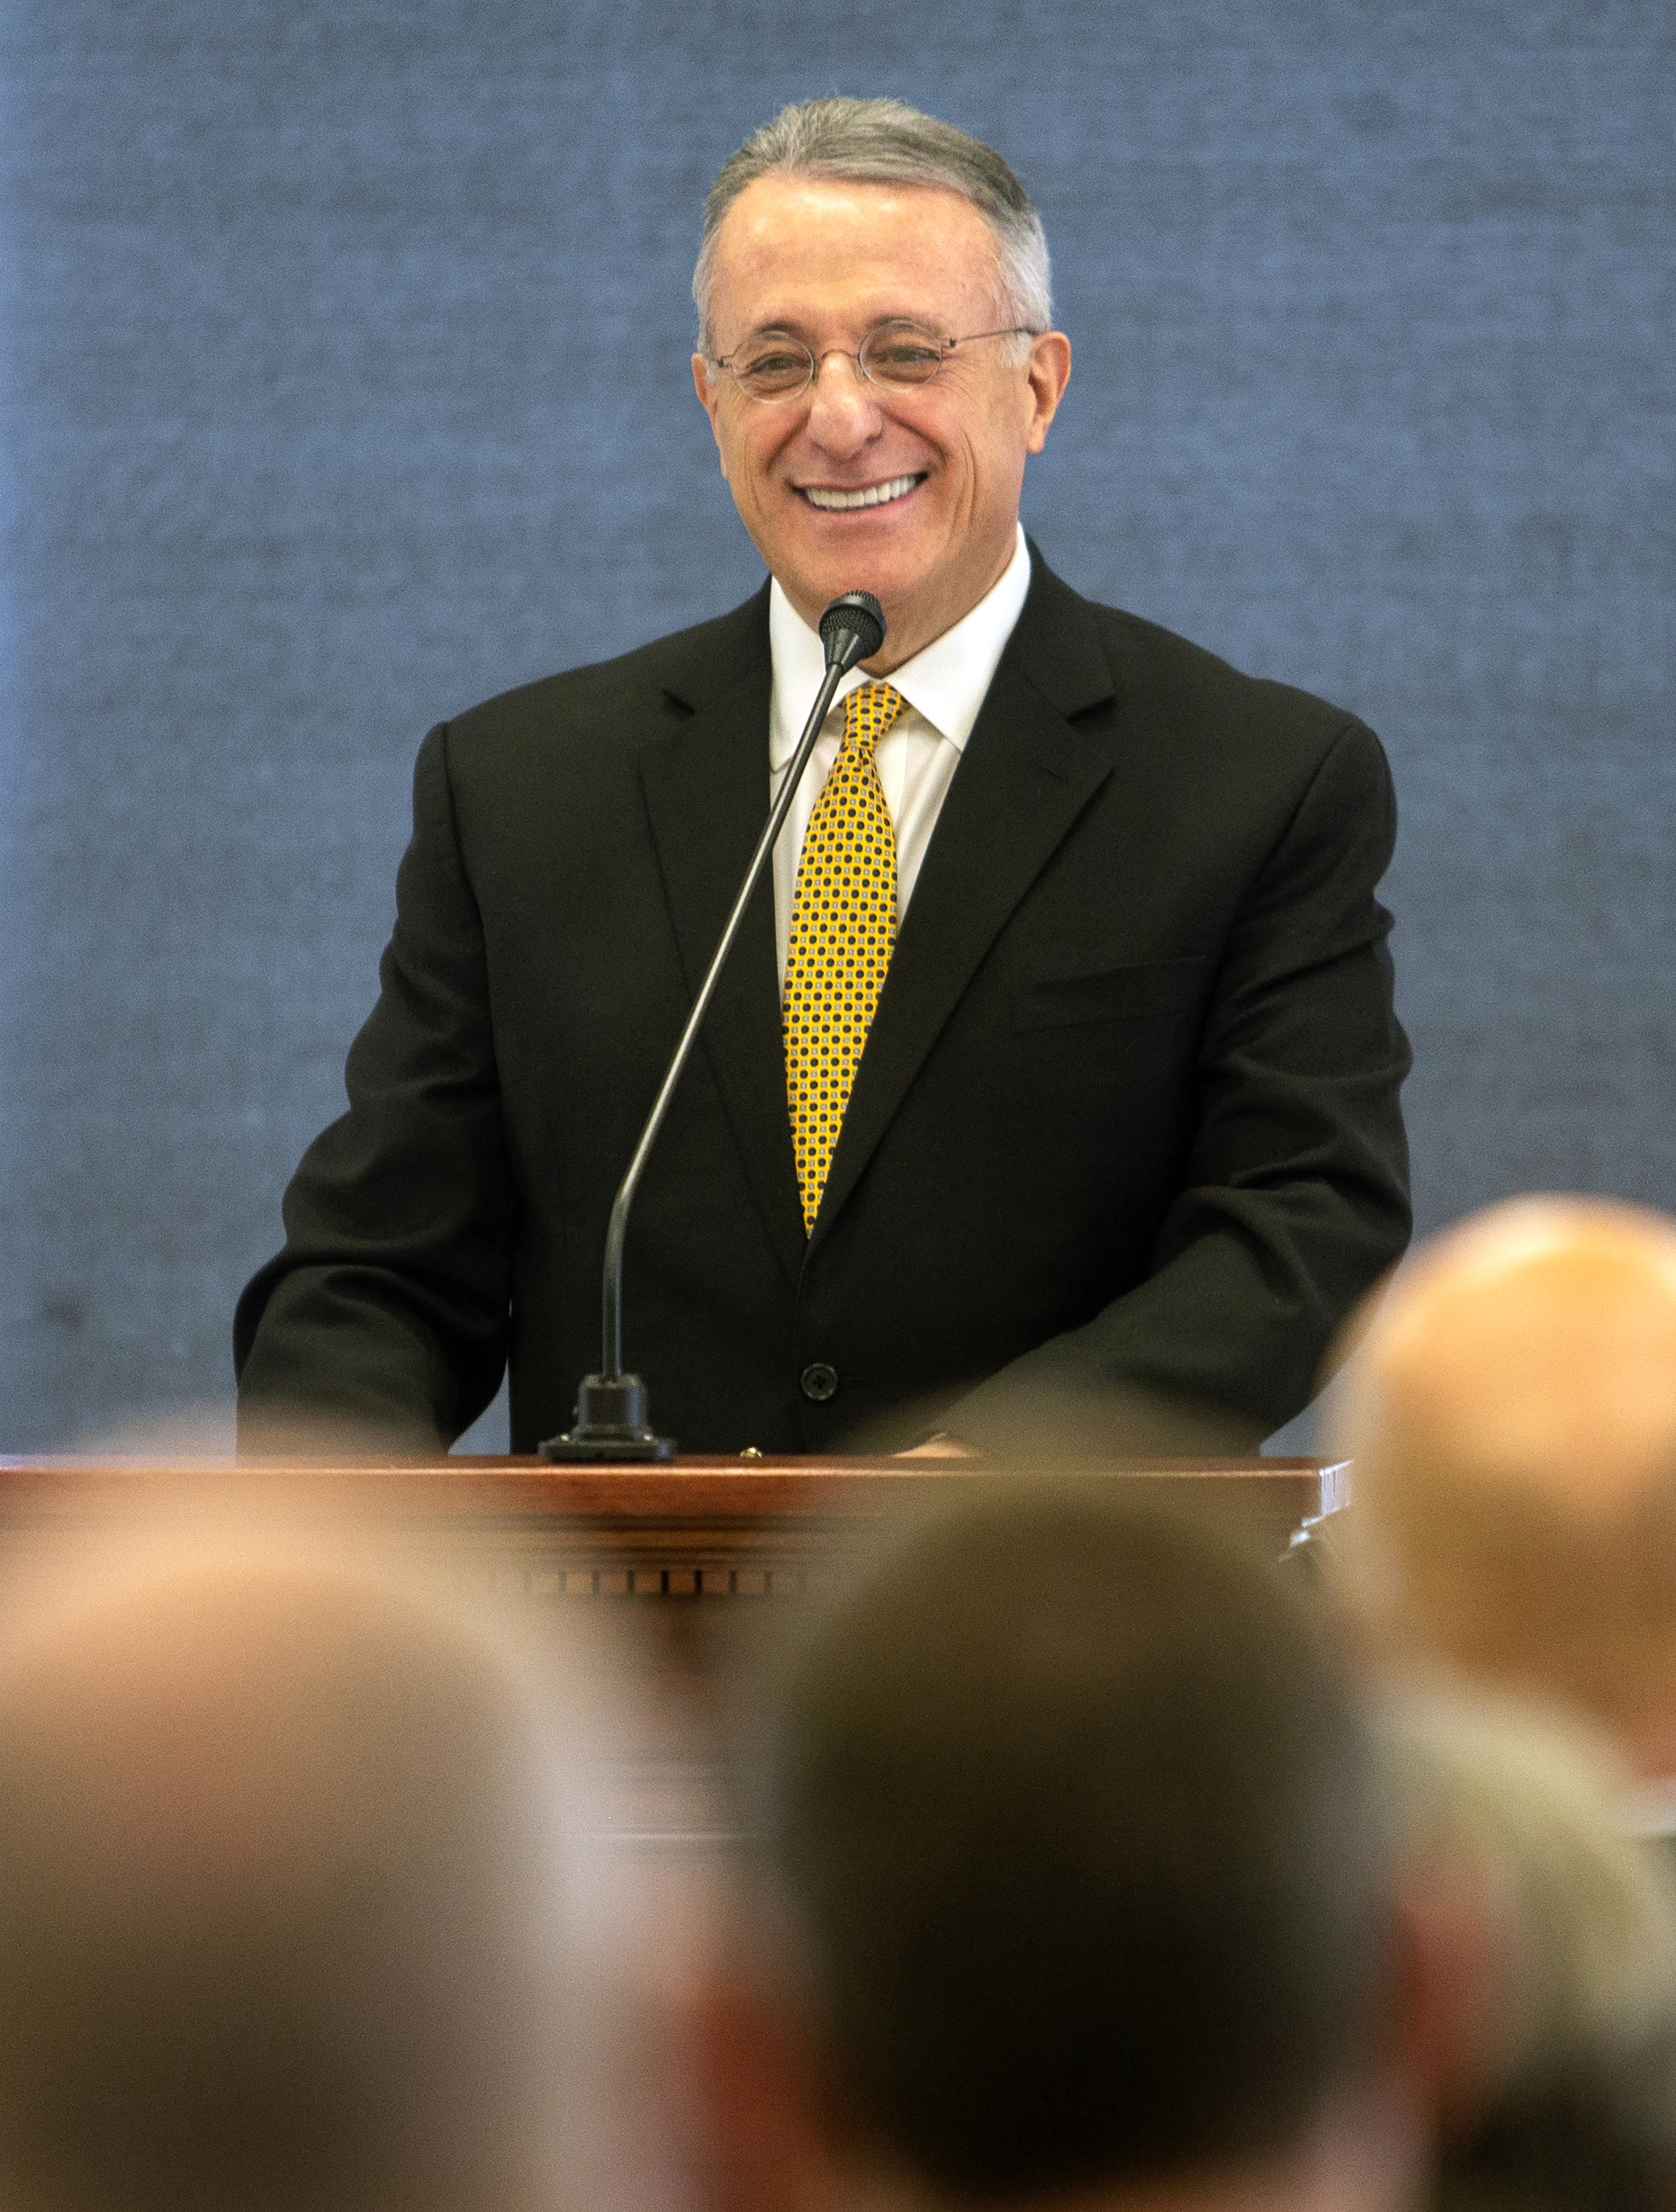 Elder Ulisses Soares of the Quorum of the Twelve Apostles gives a short speech then gives the rededication prayer for the Caroline Hemenway Harman Building at BYU in Provo, Utah, on Tuesday, Feb. 5, 2019.